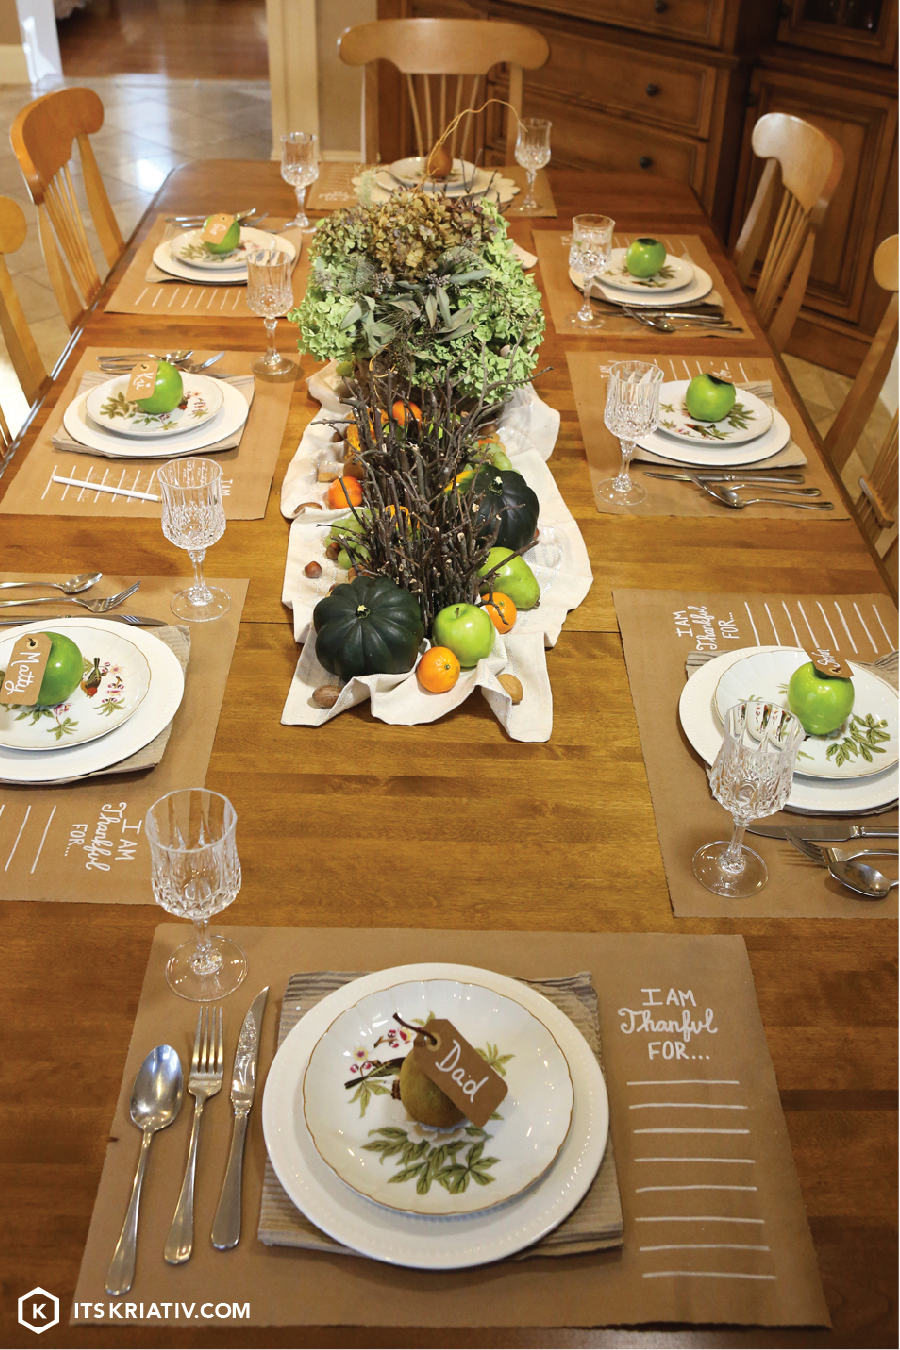 13_Nov_Decor-DIY-Thanksgiving-Place-Setting-07.jpg